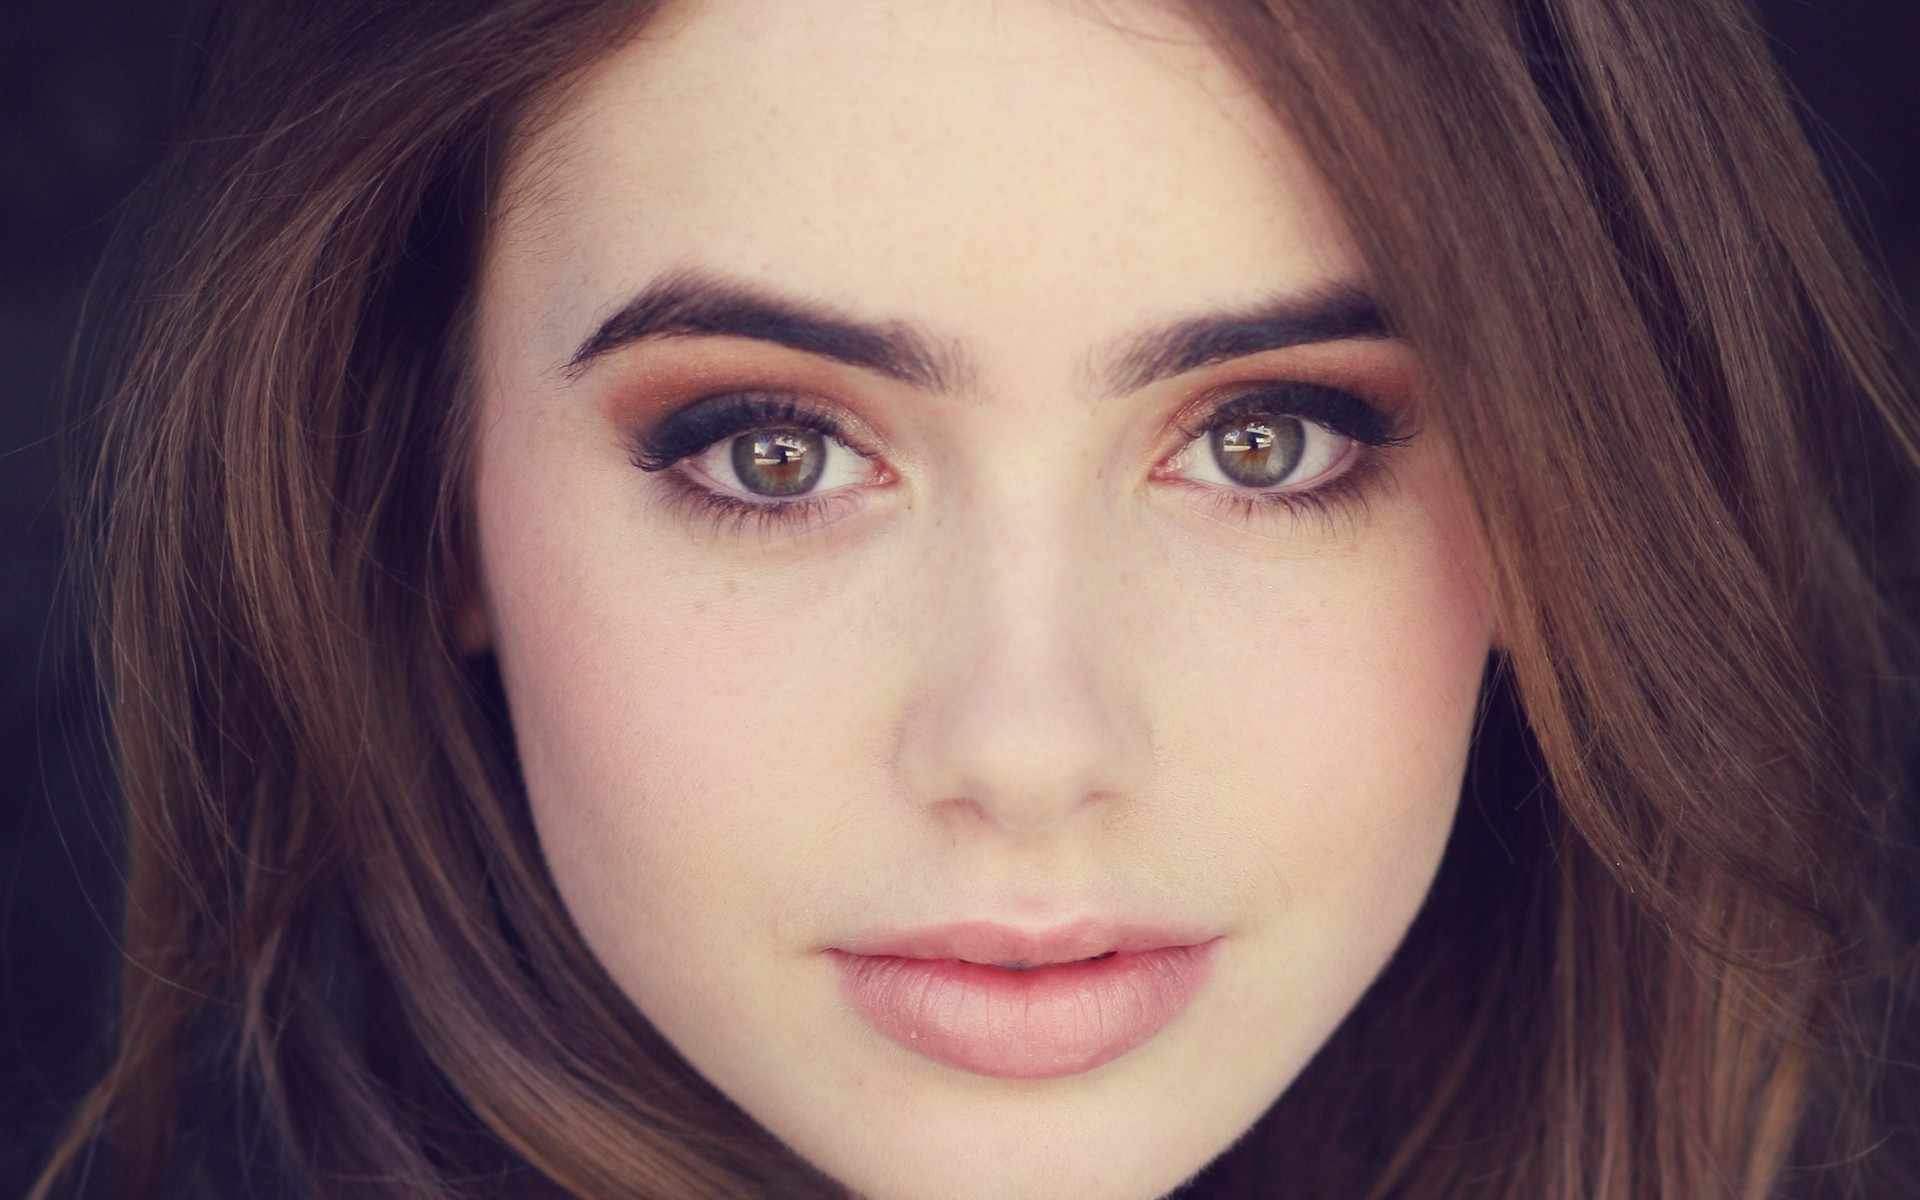 Lily Collins wallpaper for desktop